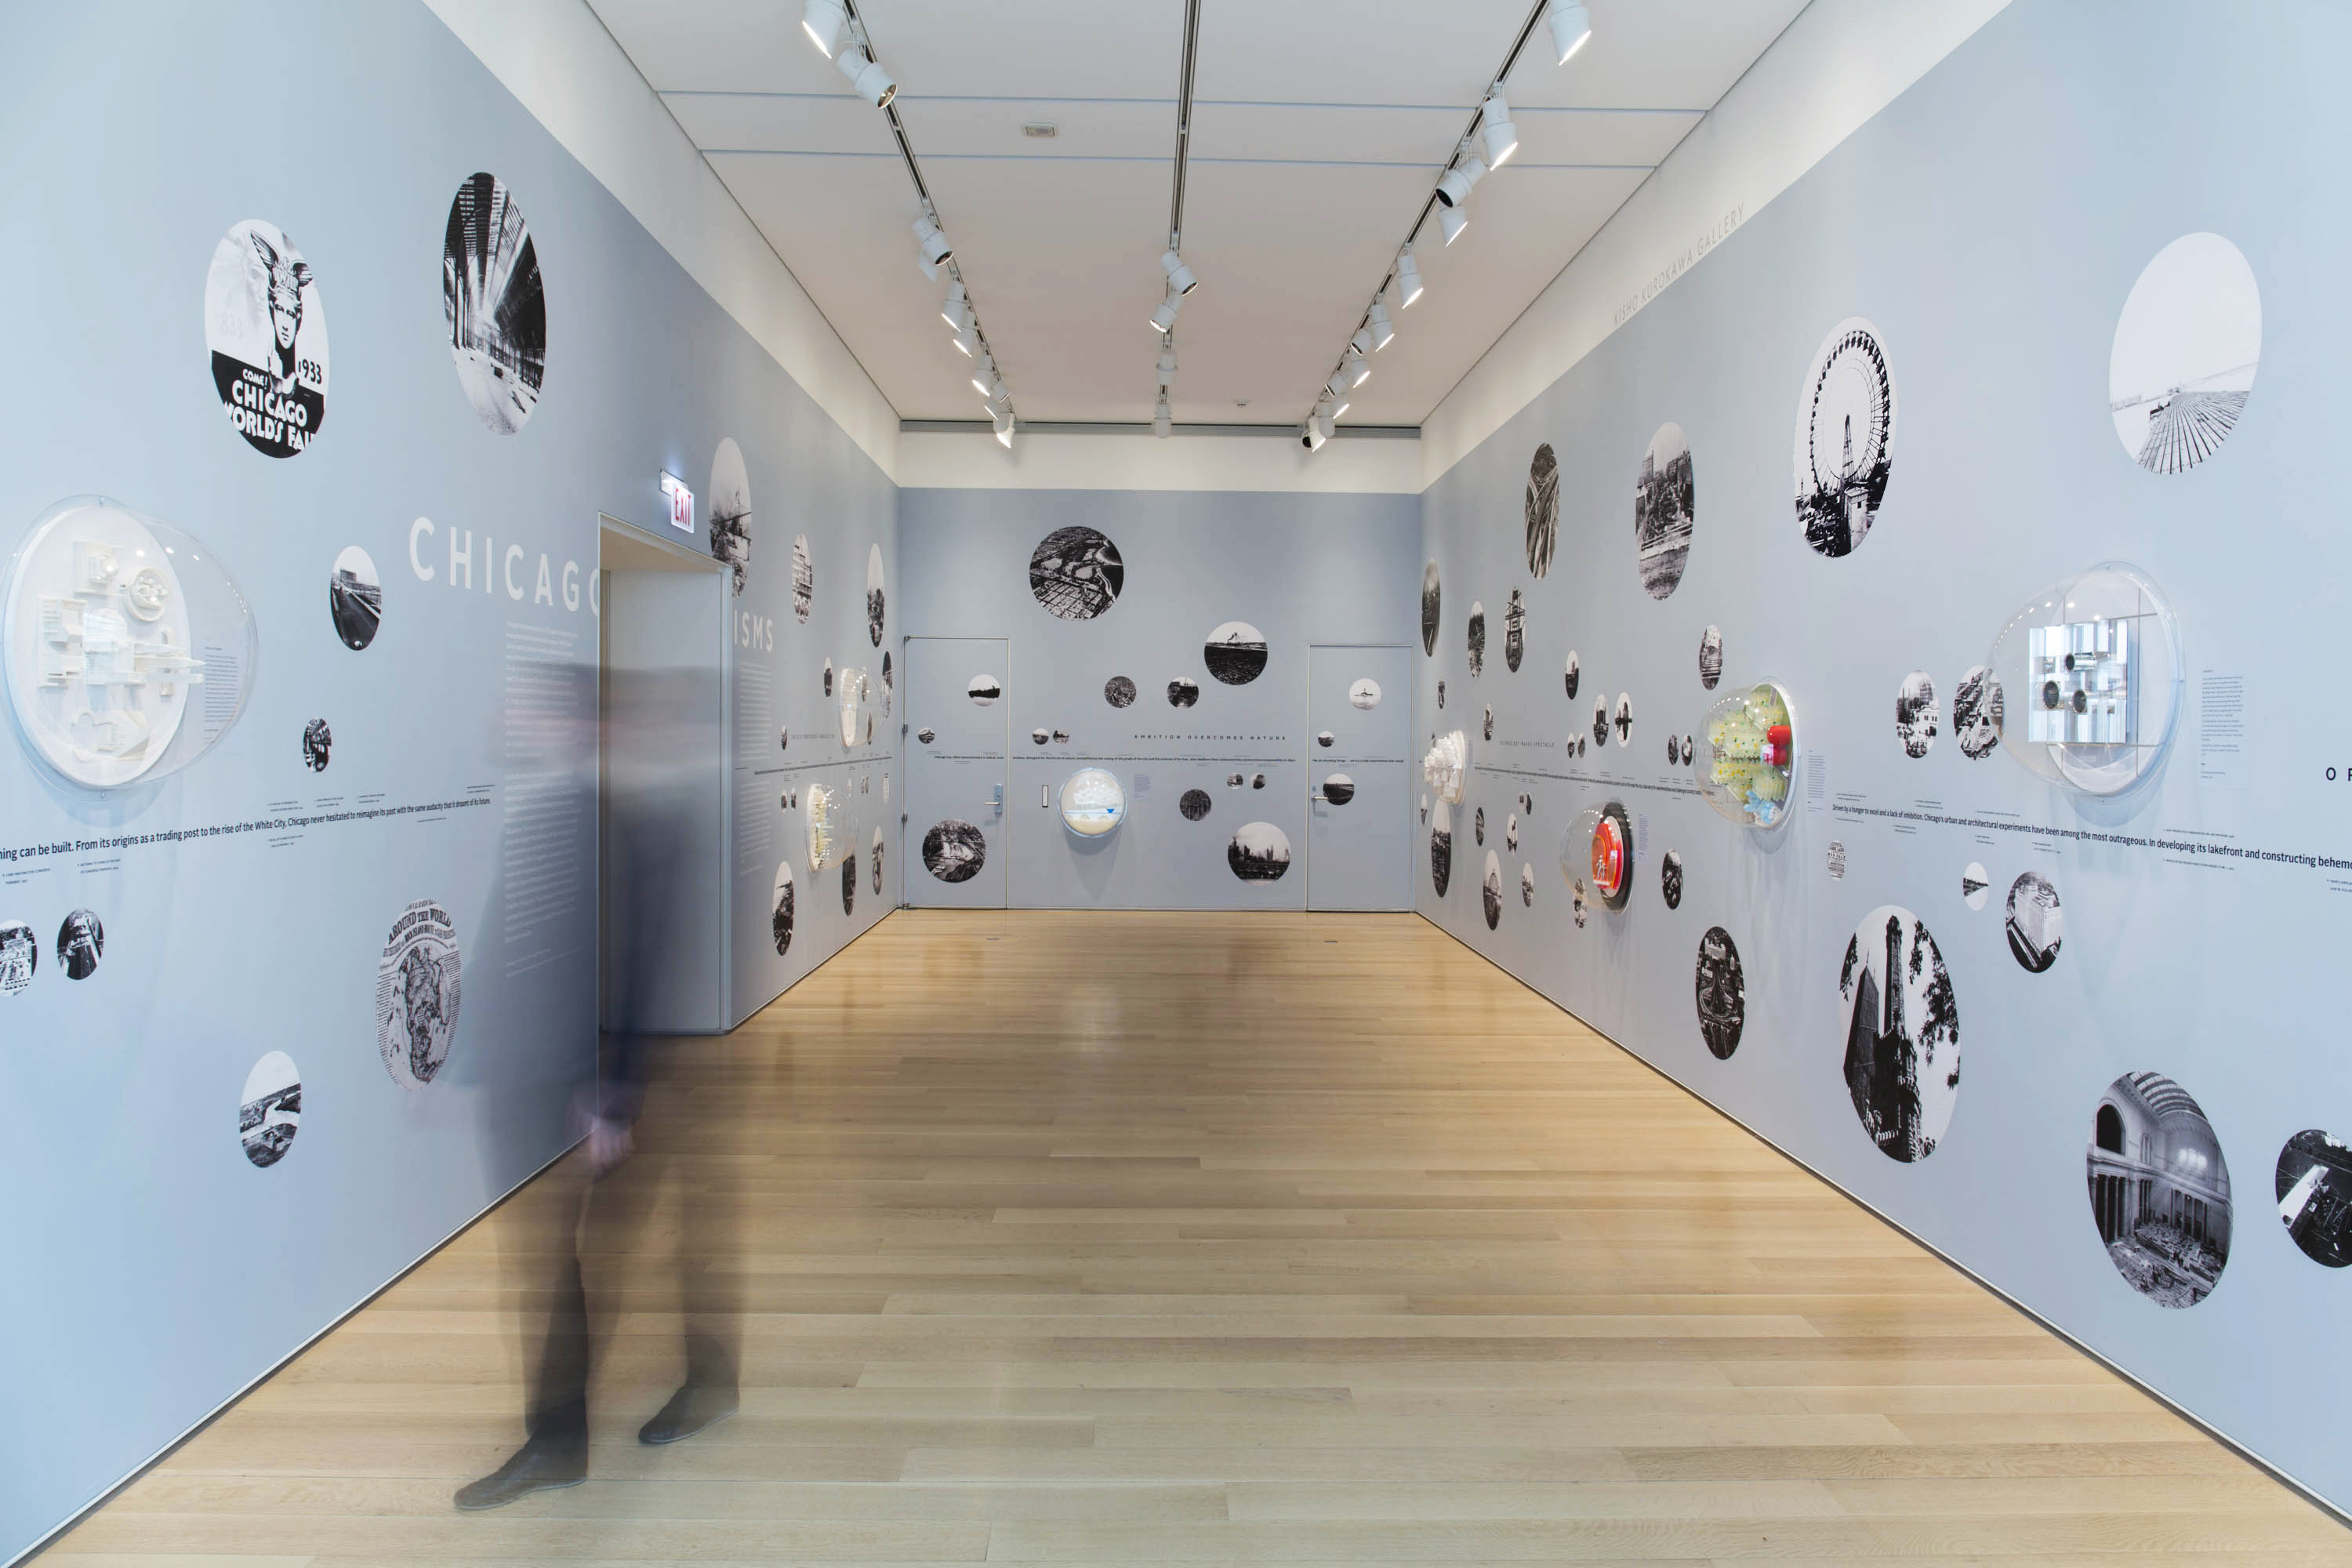 6a) Chicagoisms Exhibit